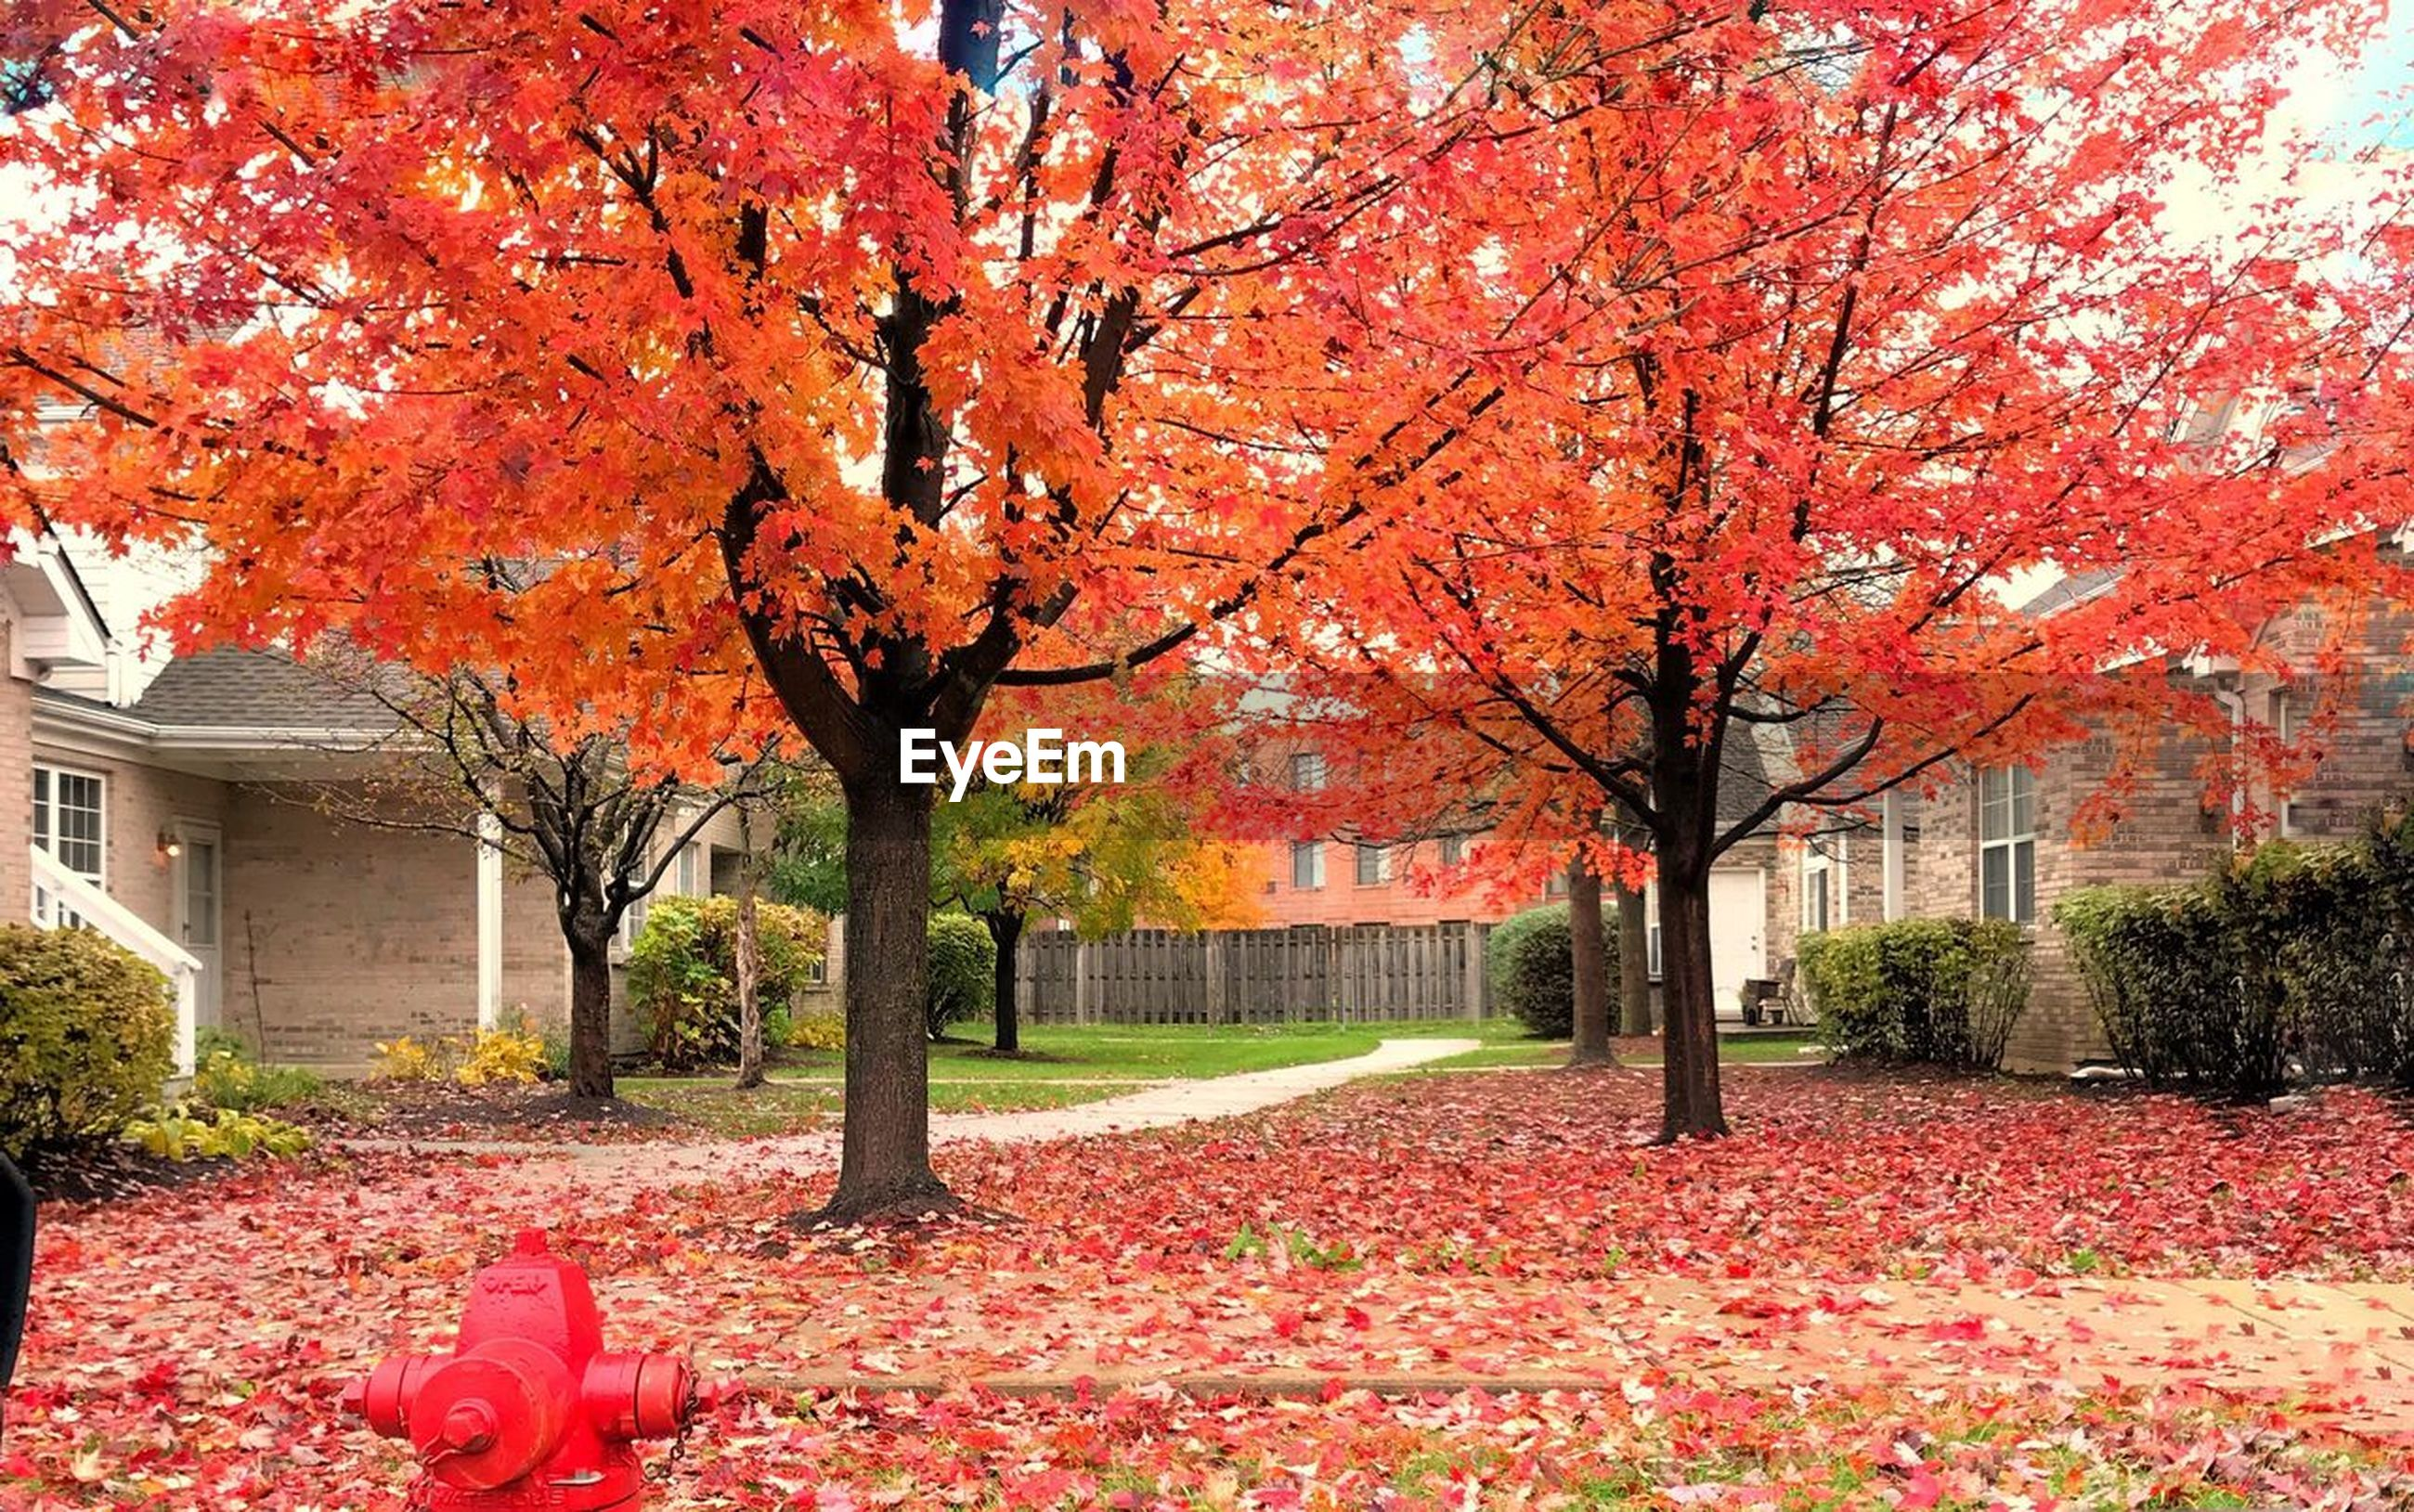 autumn, change, leaf, tree, red, nature, building exterior, orange color, beauty in nature, scenics, architecture, no people, outdoors, maple leaf, built structure, maple tree, tranquility, multi colored, day, fragility, branch, maple, sky